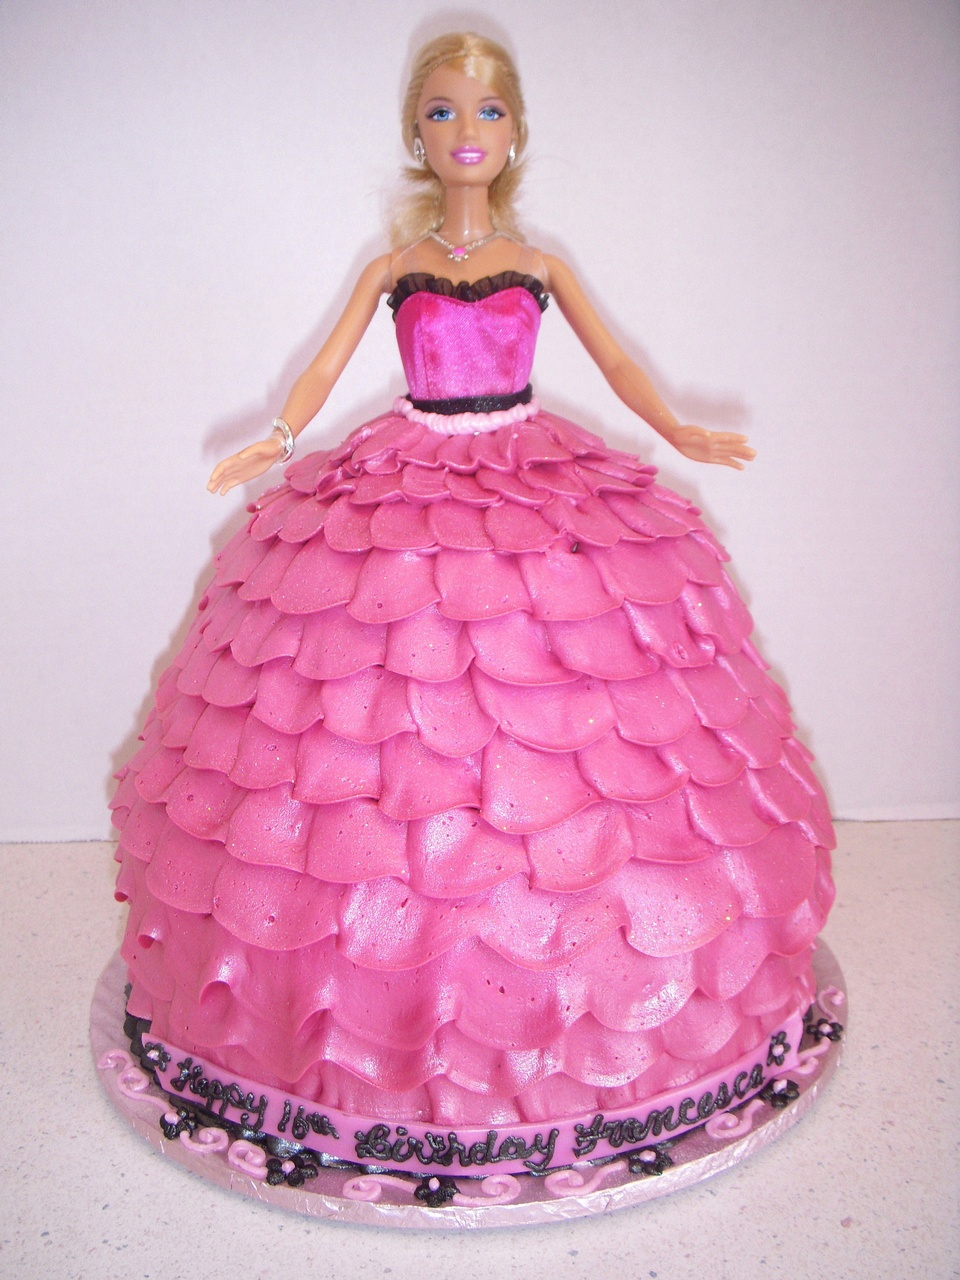 Doll Cake Images Download : sweetiesdelights - All - Doll Cakes